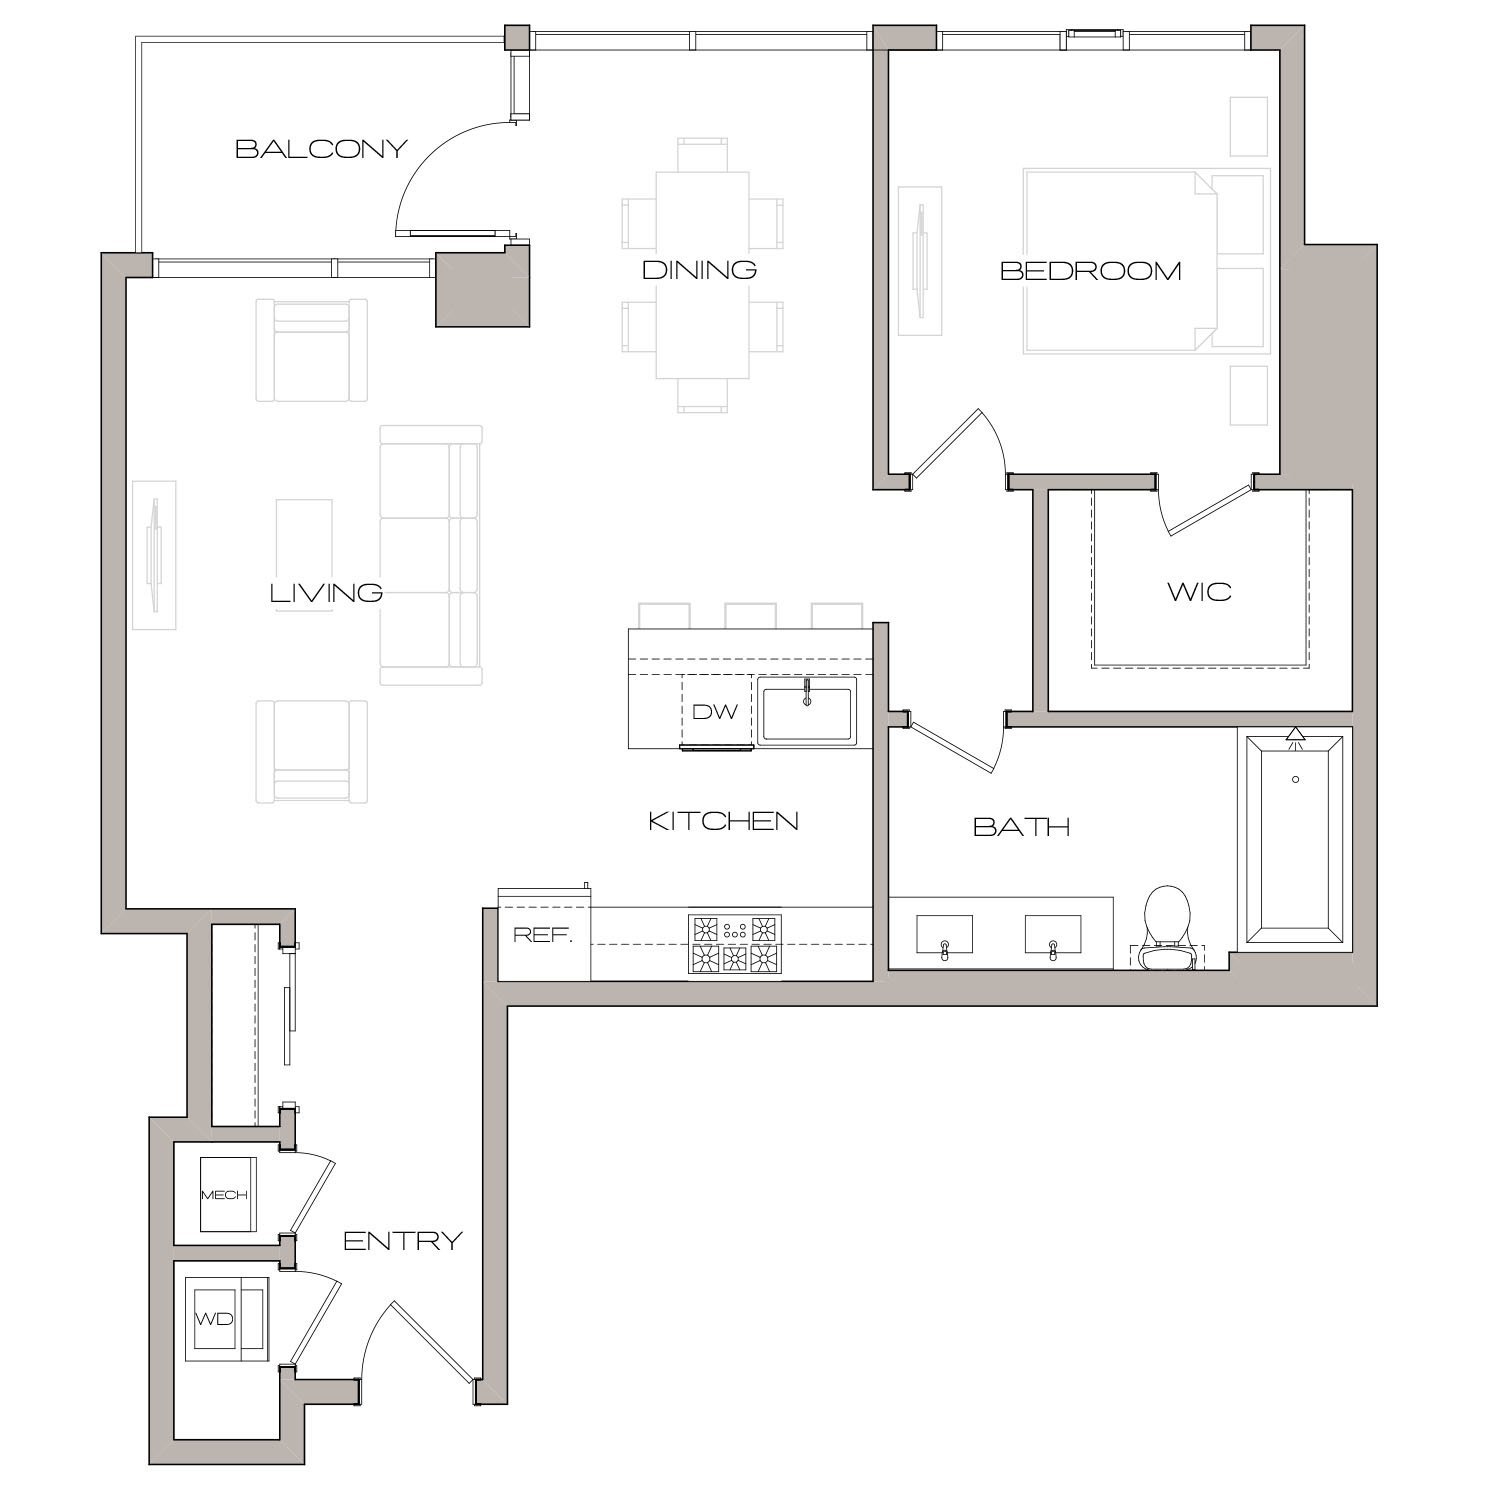 A 5 floor plan diagram. One bedroom, one bathroom, an open kitchen, living, and dining area, a balcony, and a washer dryer.